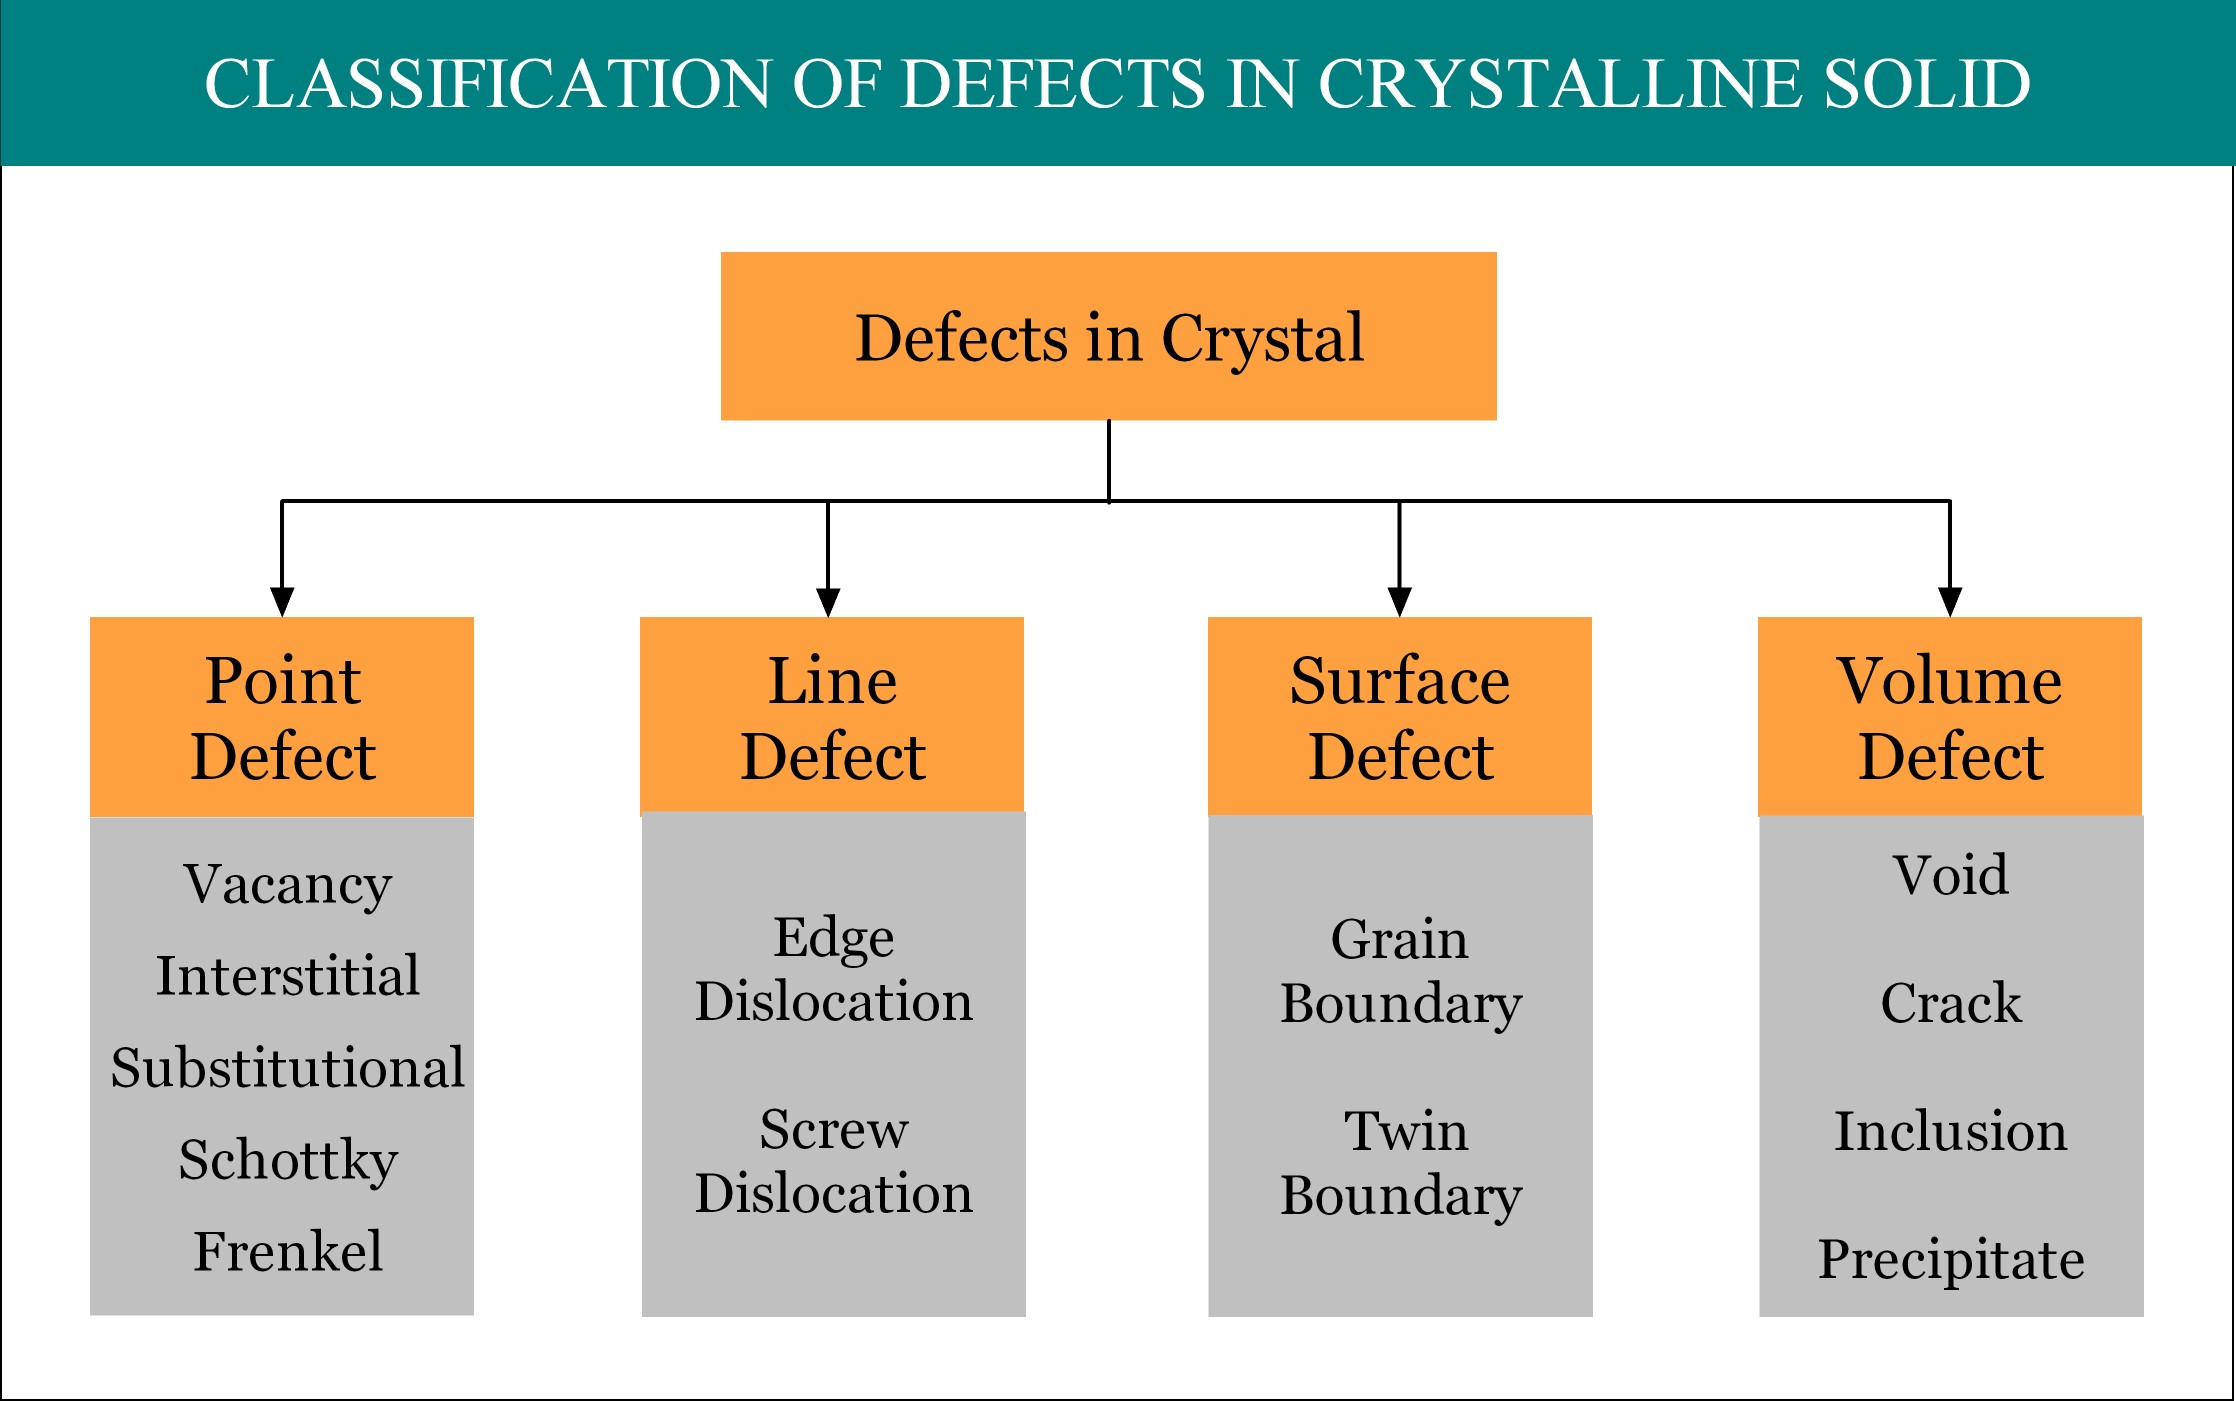 Interstitial Defect Point Defects In Solid Materials Welding Diagram